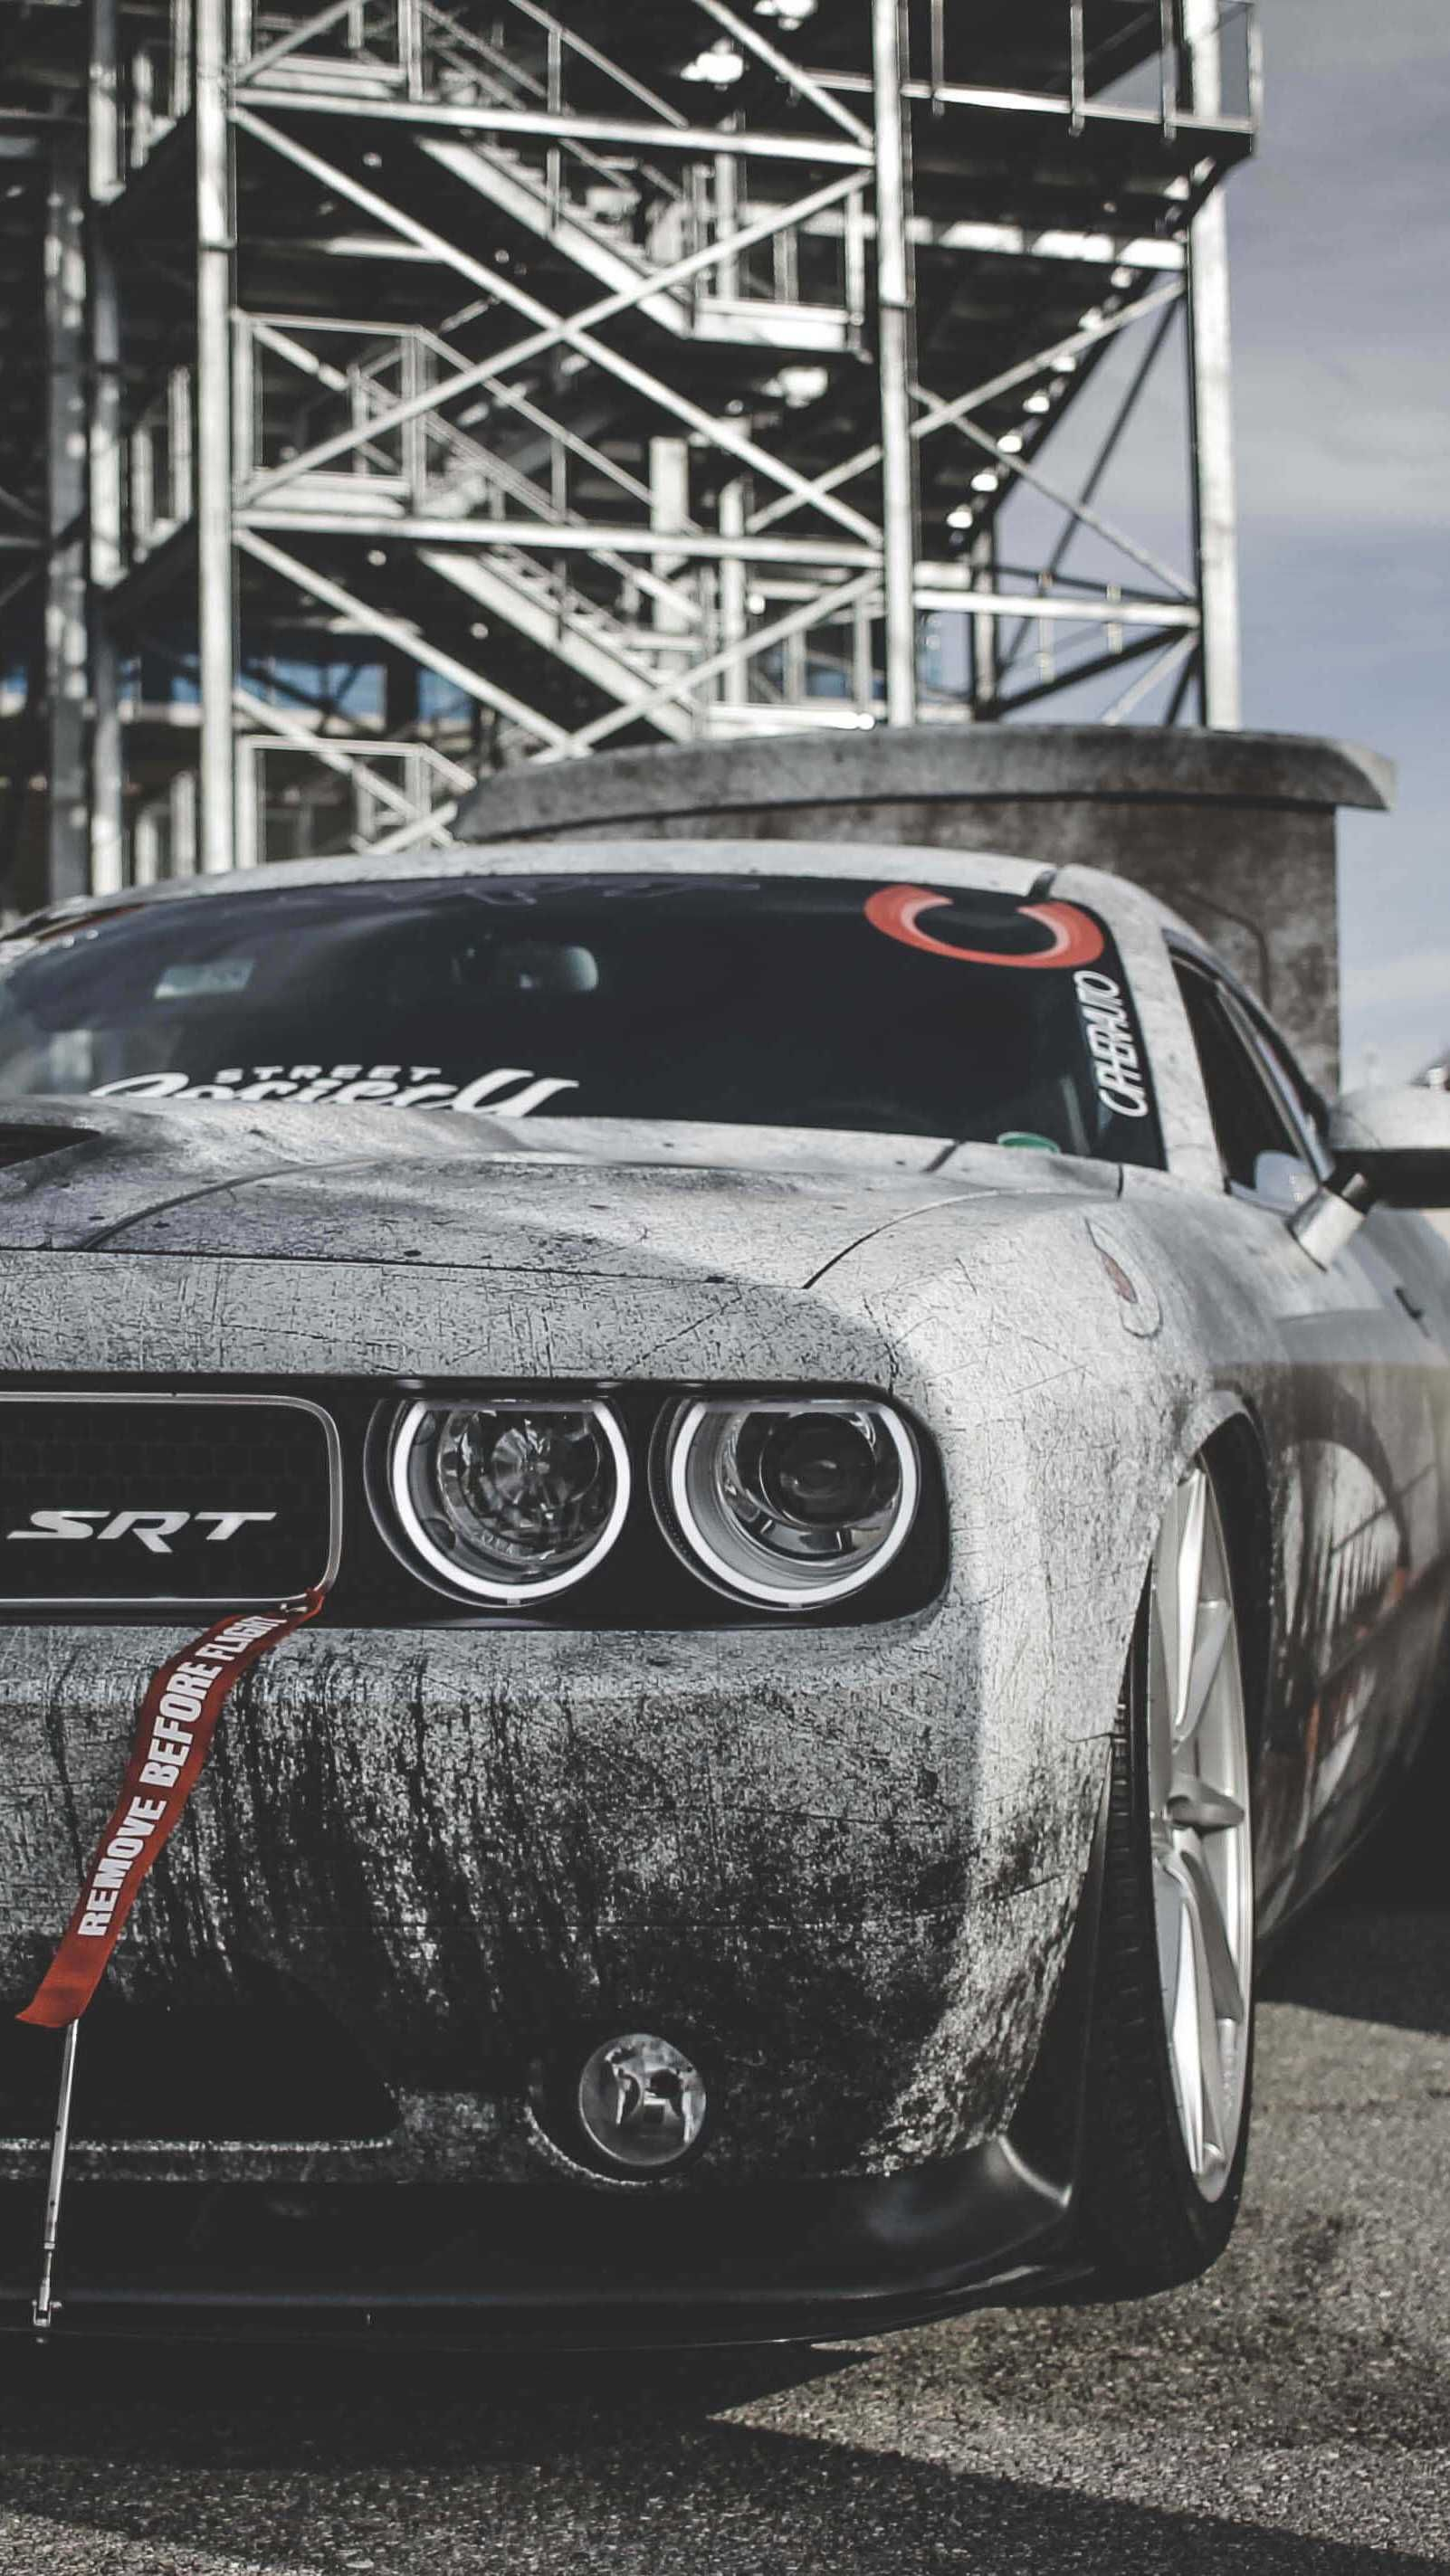 Dodge Challenger Hd Iphone Wallpaper Mustang Cars Car Wallpapers Luxury Cars